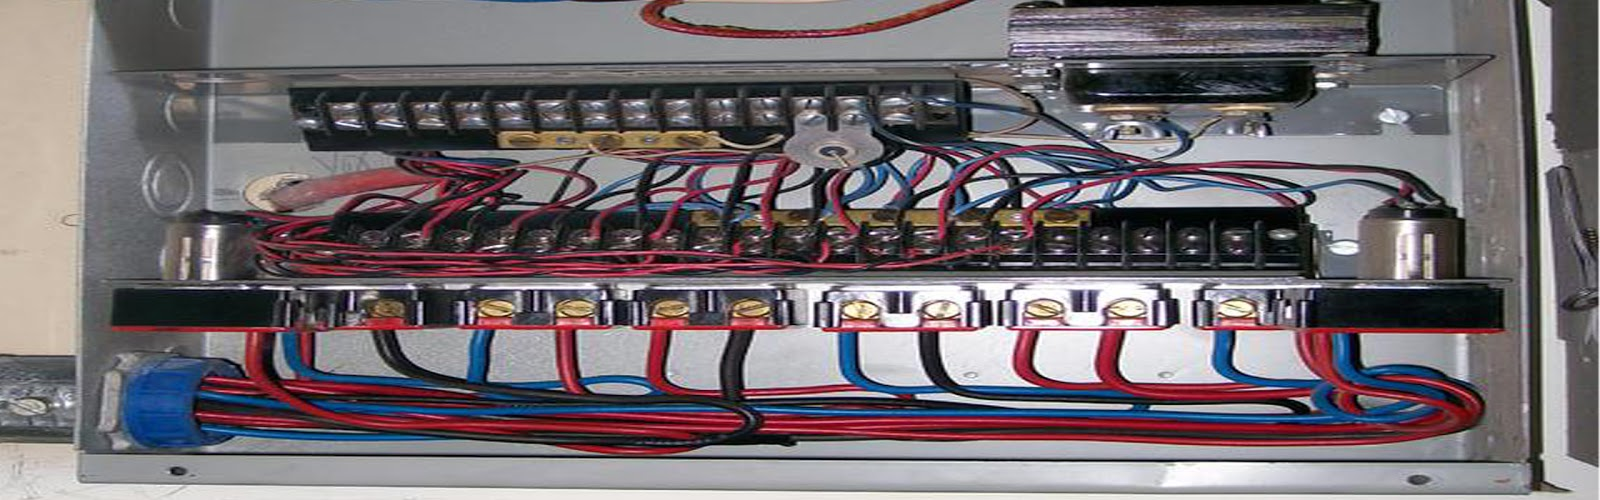 hight resolution of offering conventional electrical services such as adding circuits and trouble shooting as well as less conventional services including low voltage wiring